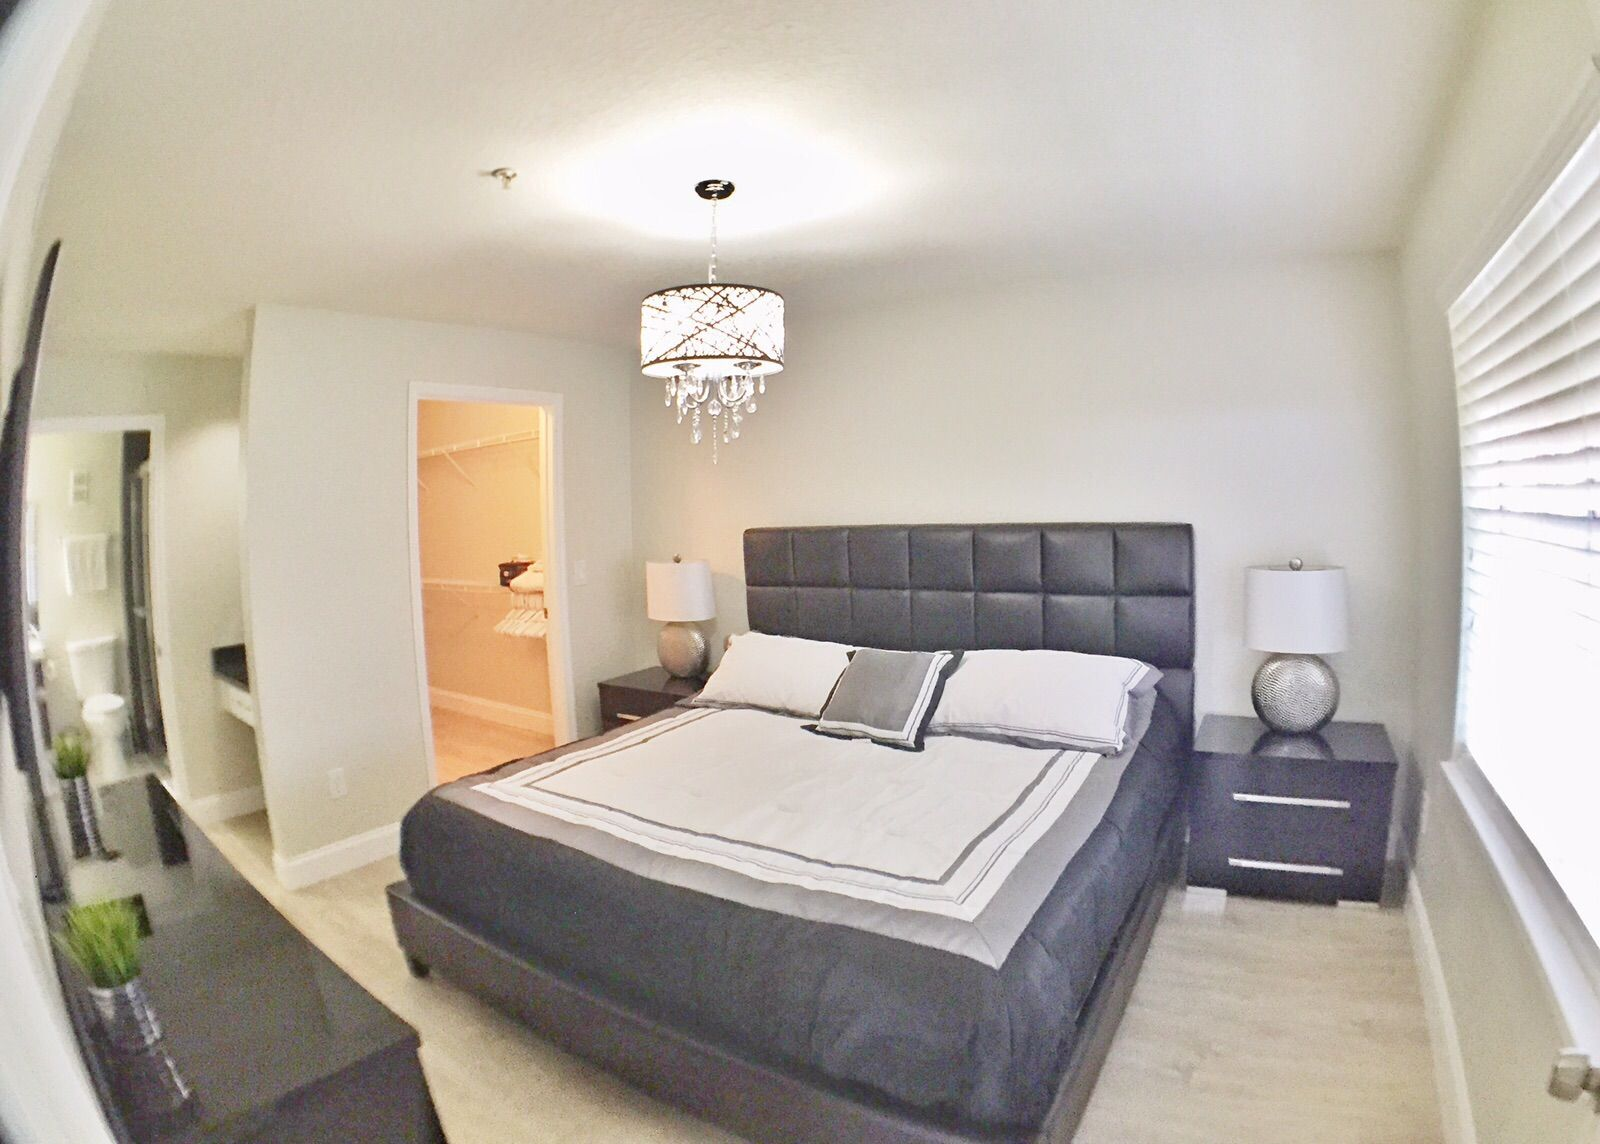 1 Bedroom Fully Furnished Near Universal Studios Beautiful Condo Located In Metrowest S Golf Course Enjoy Multiple Furnished Apartment Furnishings Home Decor